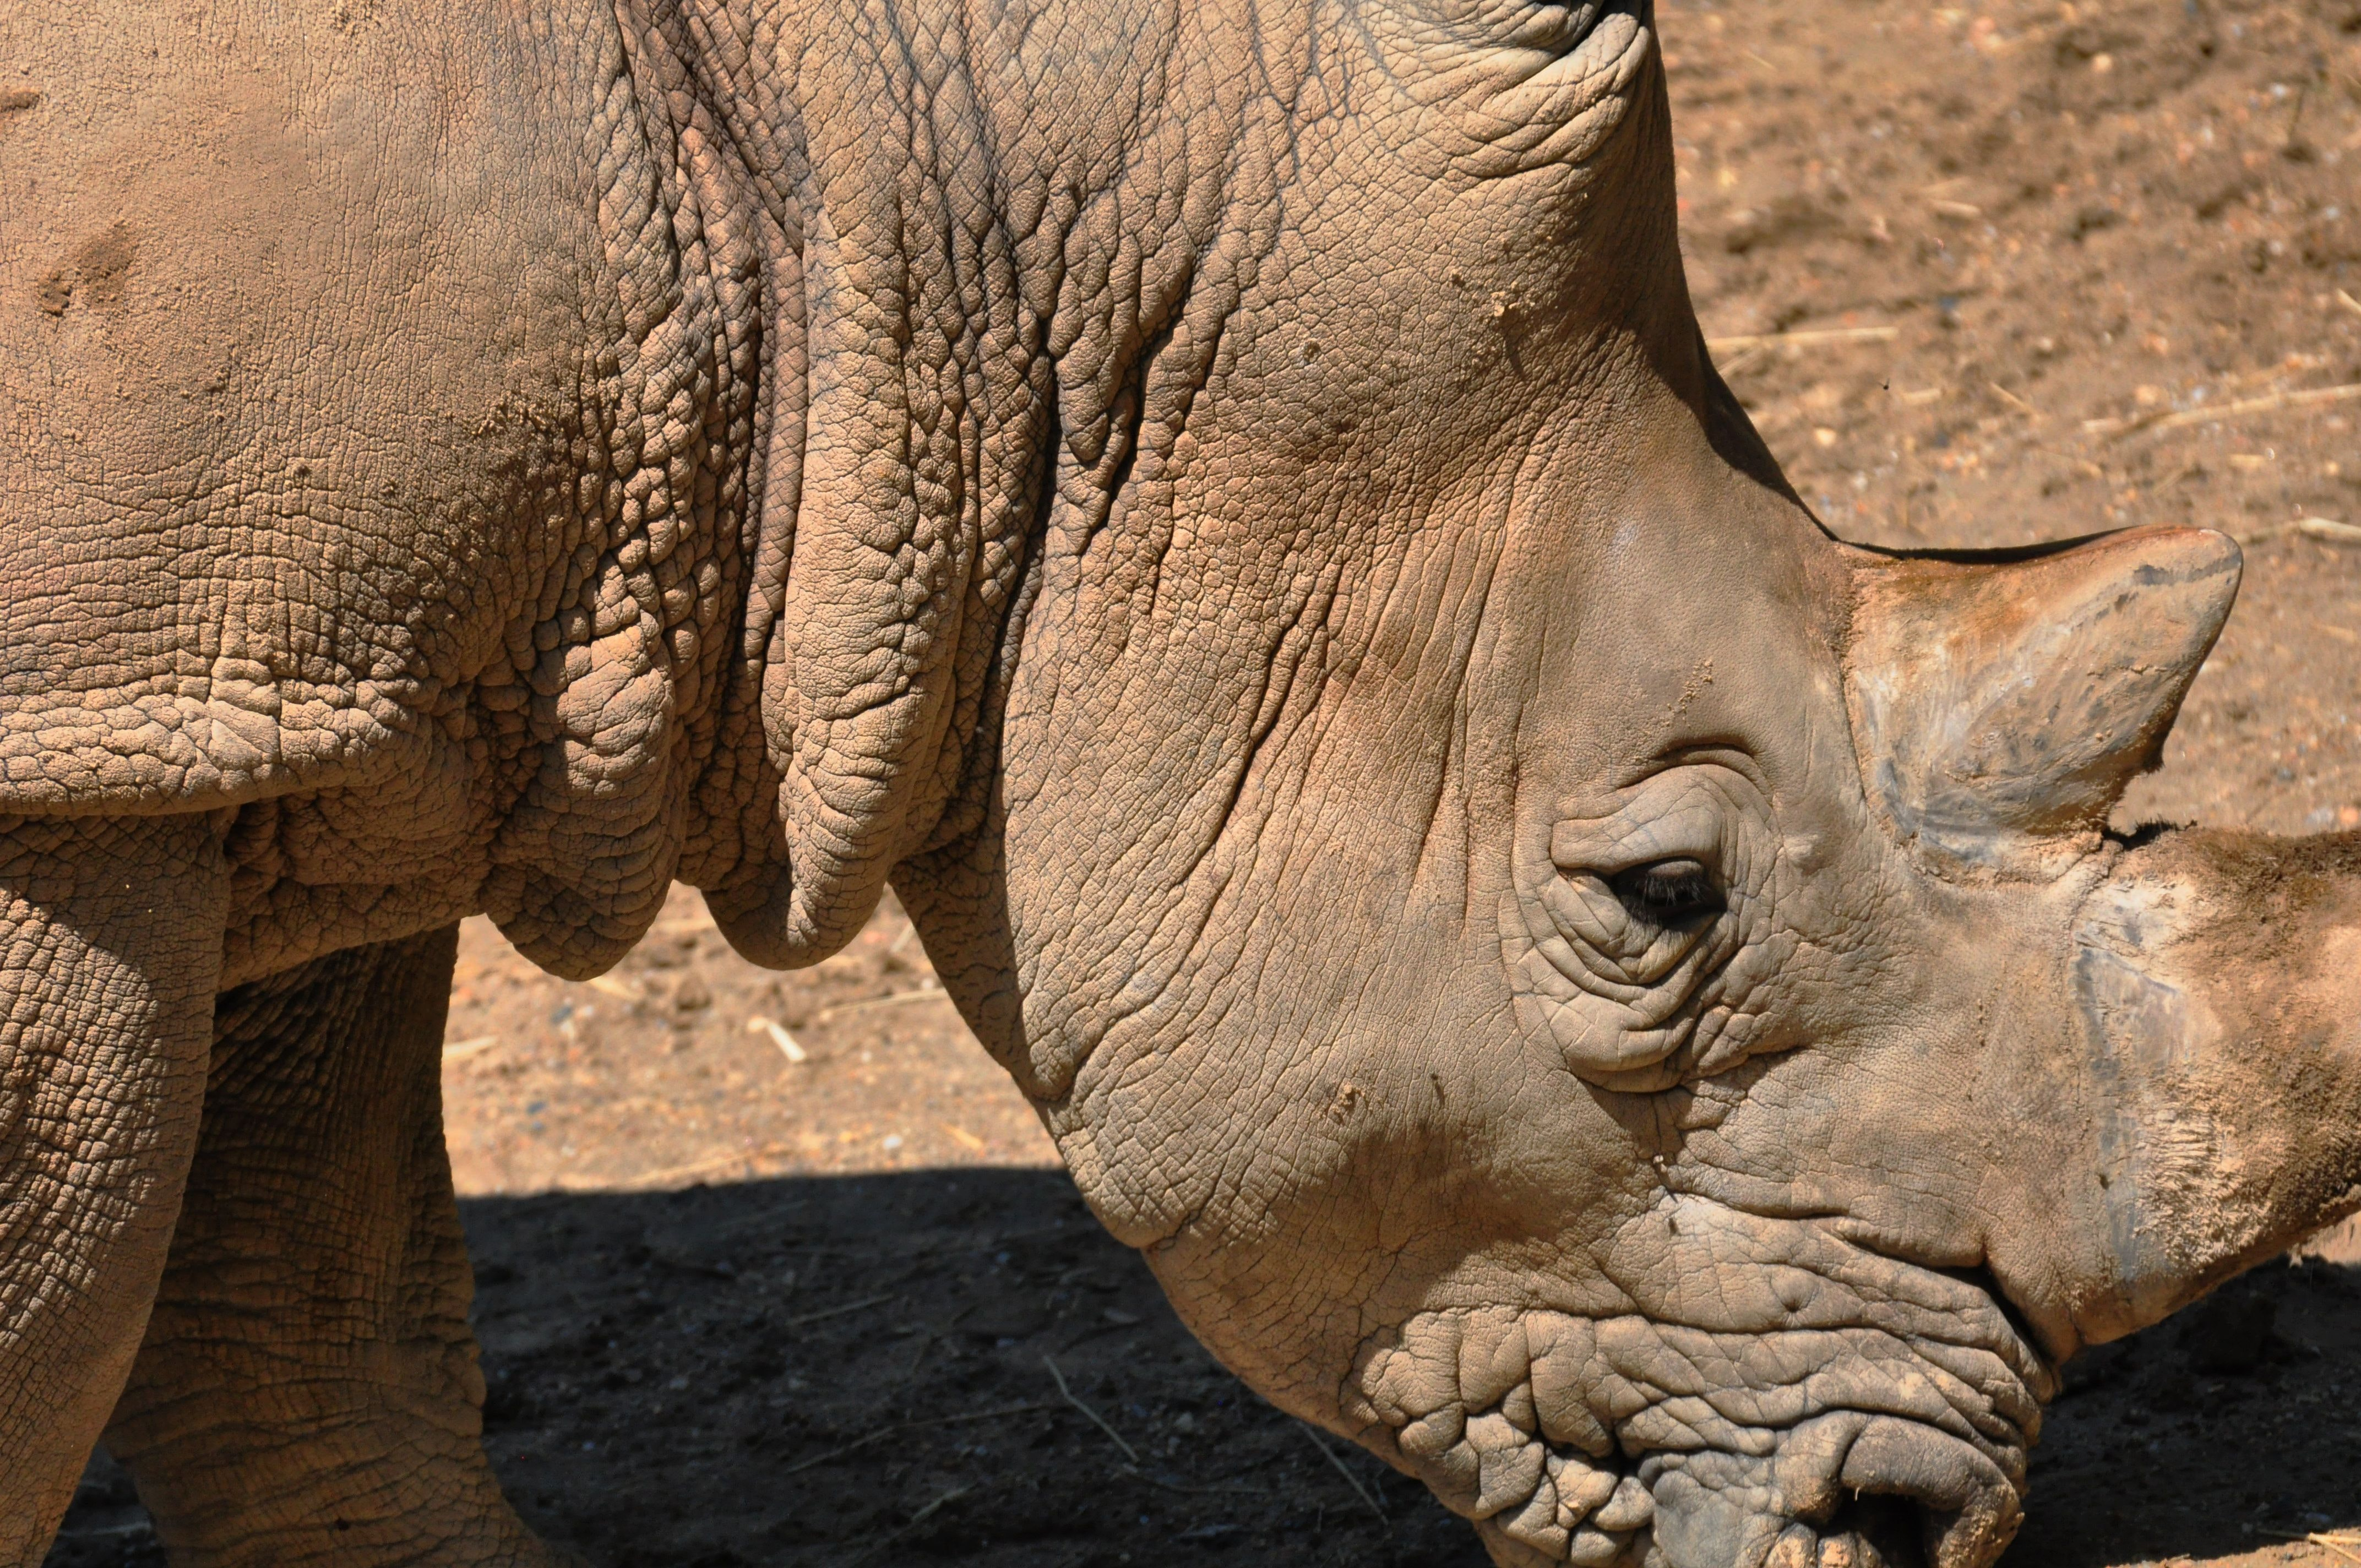 Macro rhino with its creased neck and closed eyes by a deser scene